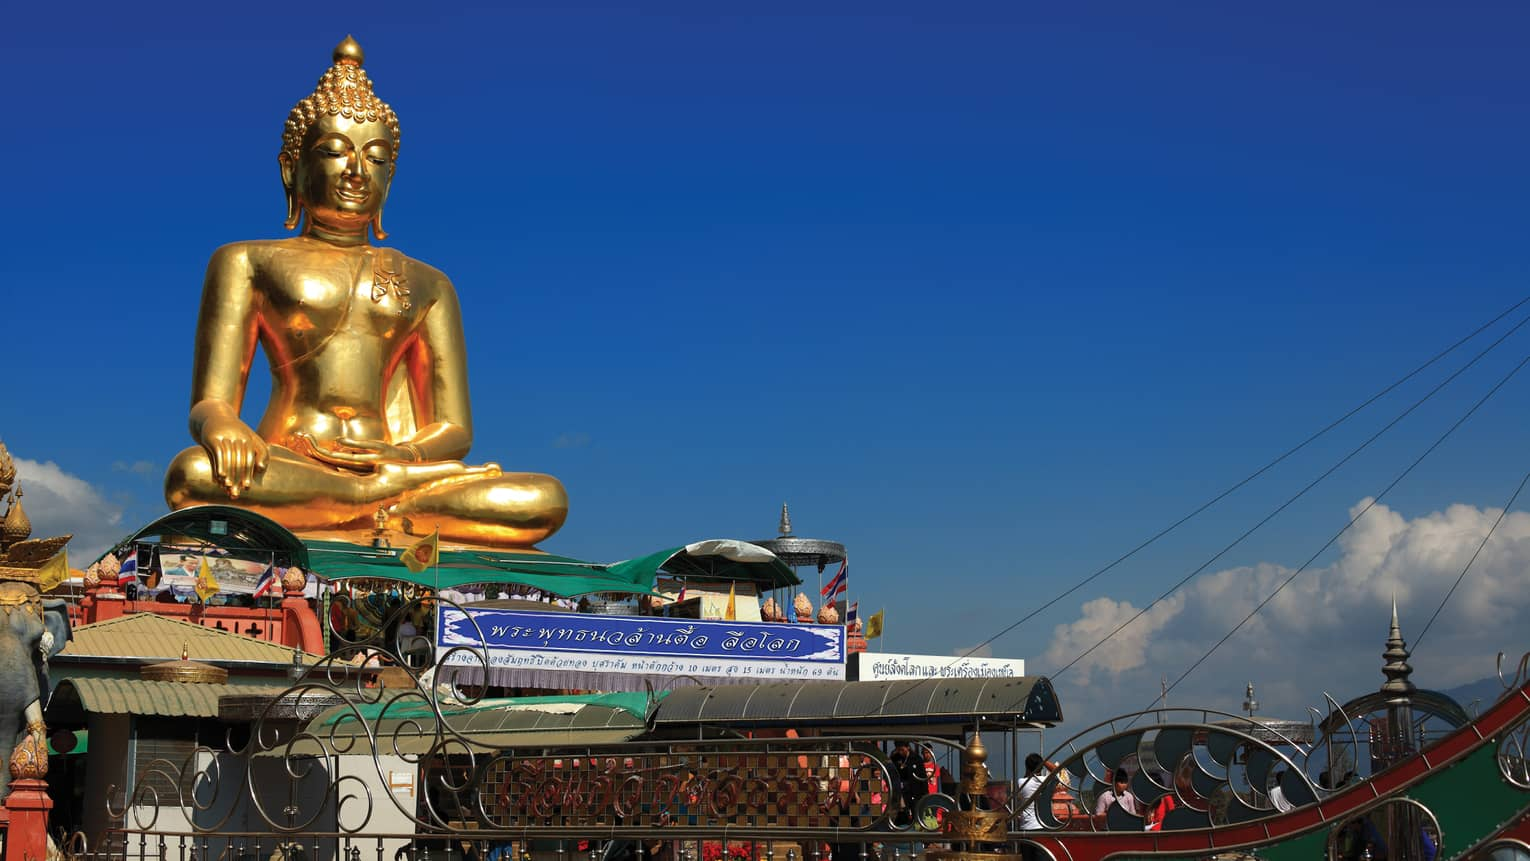 Gold Buddha statue on temple roof against a blue sky